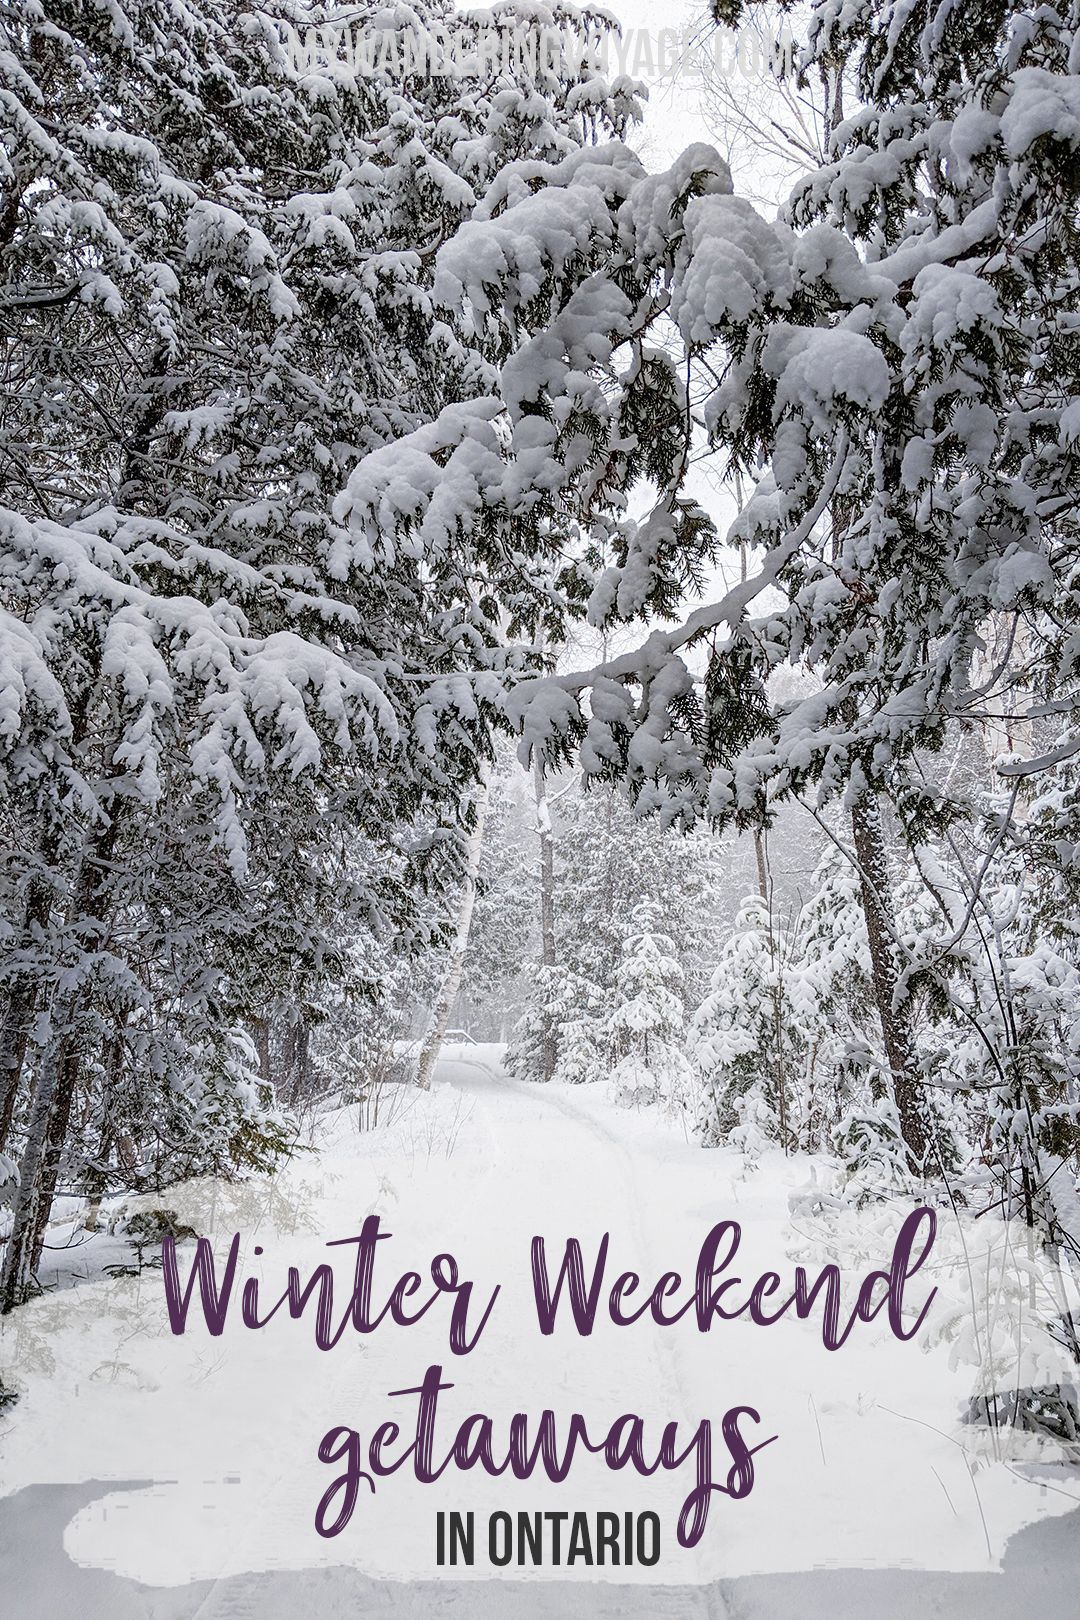 Despite the blistering cold the layers of clothes and lack of sun there are so many great reasons to enjoy winter in Ontario Canada! These nine towns across Ontario have embraced the season. So bundle up and get ready to explore the best winter destinations in Ontario for a weekend getaway. #WinterDestinations #Ontario #style #shopping #styles #outfit #pretty #girl #girls #beauty #beautiful #me #cute #stylish #photooftheday #swag #dress #shoes #diy #design #fashion #Travel